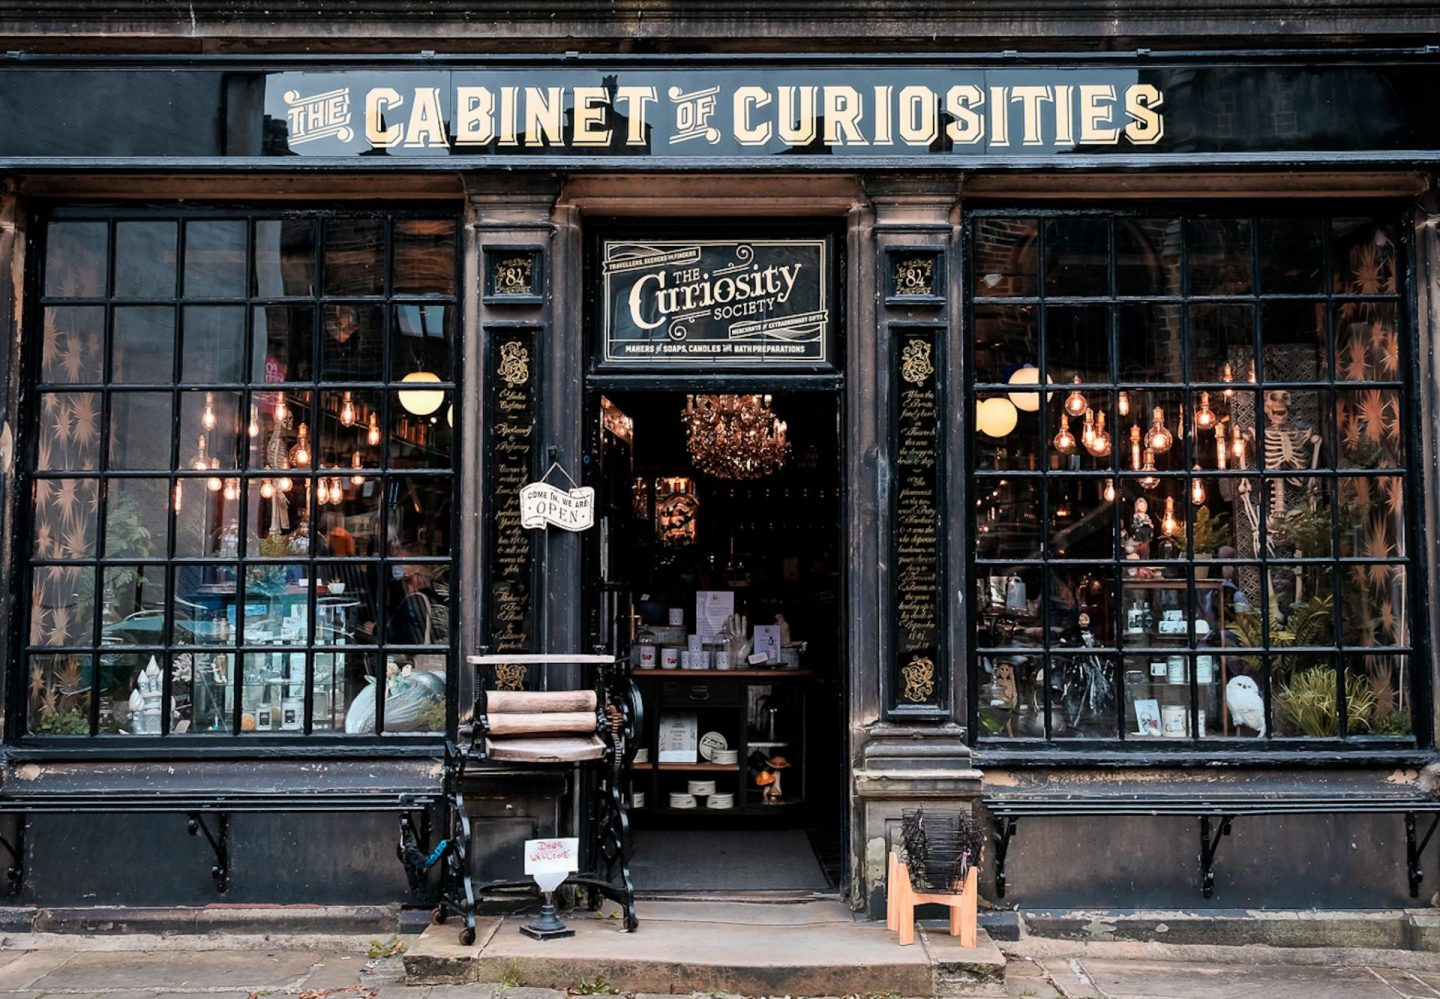 The Cabinet of Curiosities in Haworth - a stop on a day trip to Brontë Country and included in The BFR Round Up - September 2020